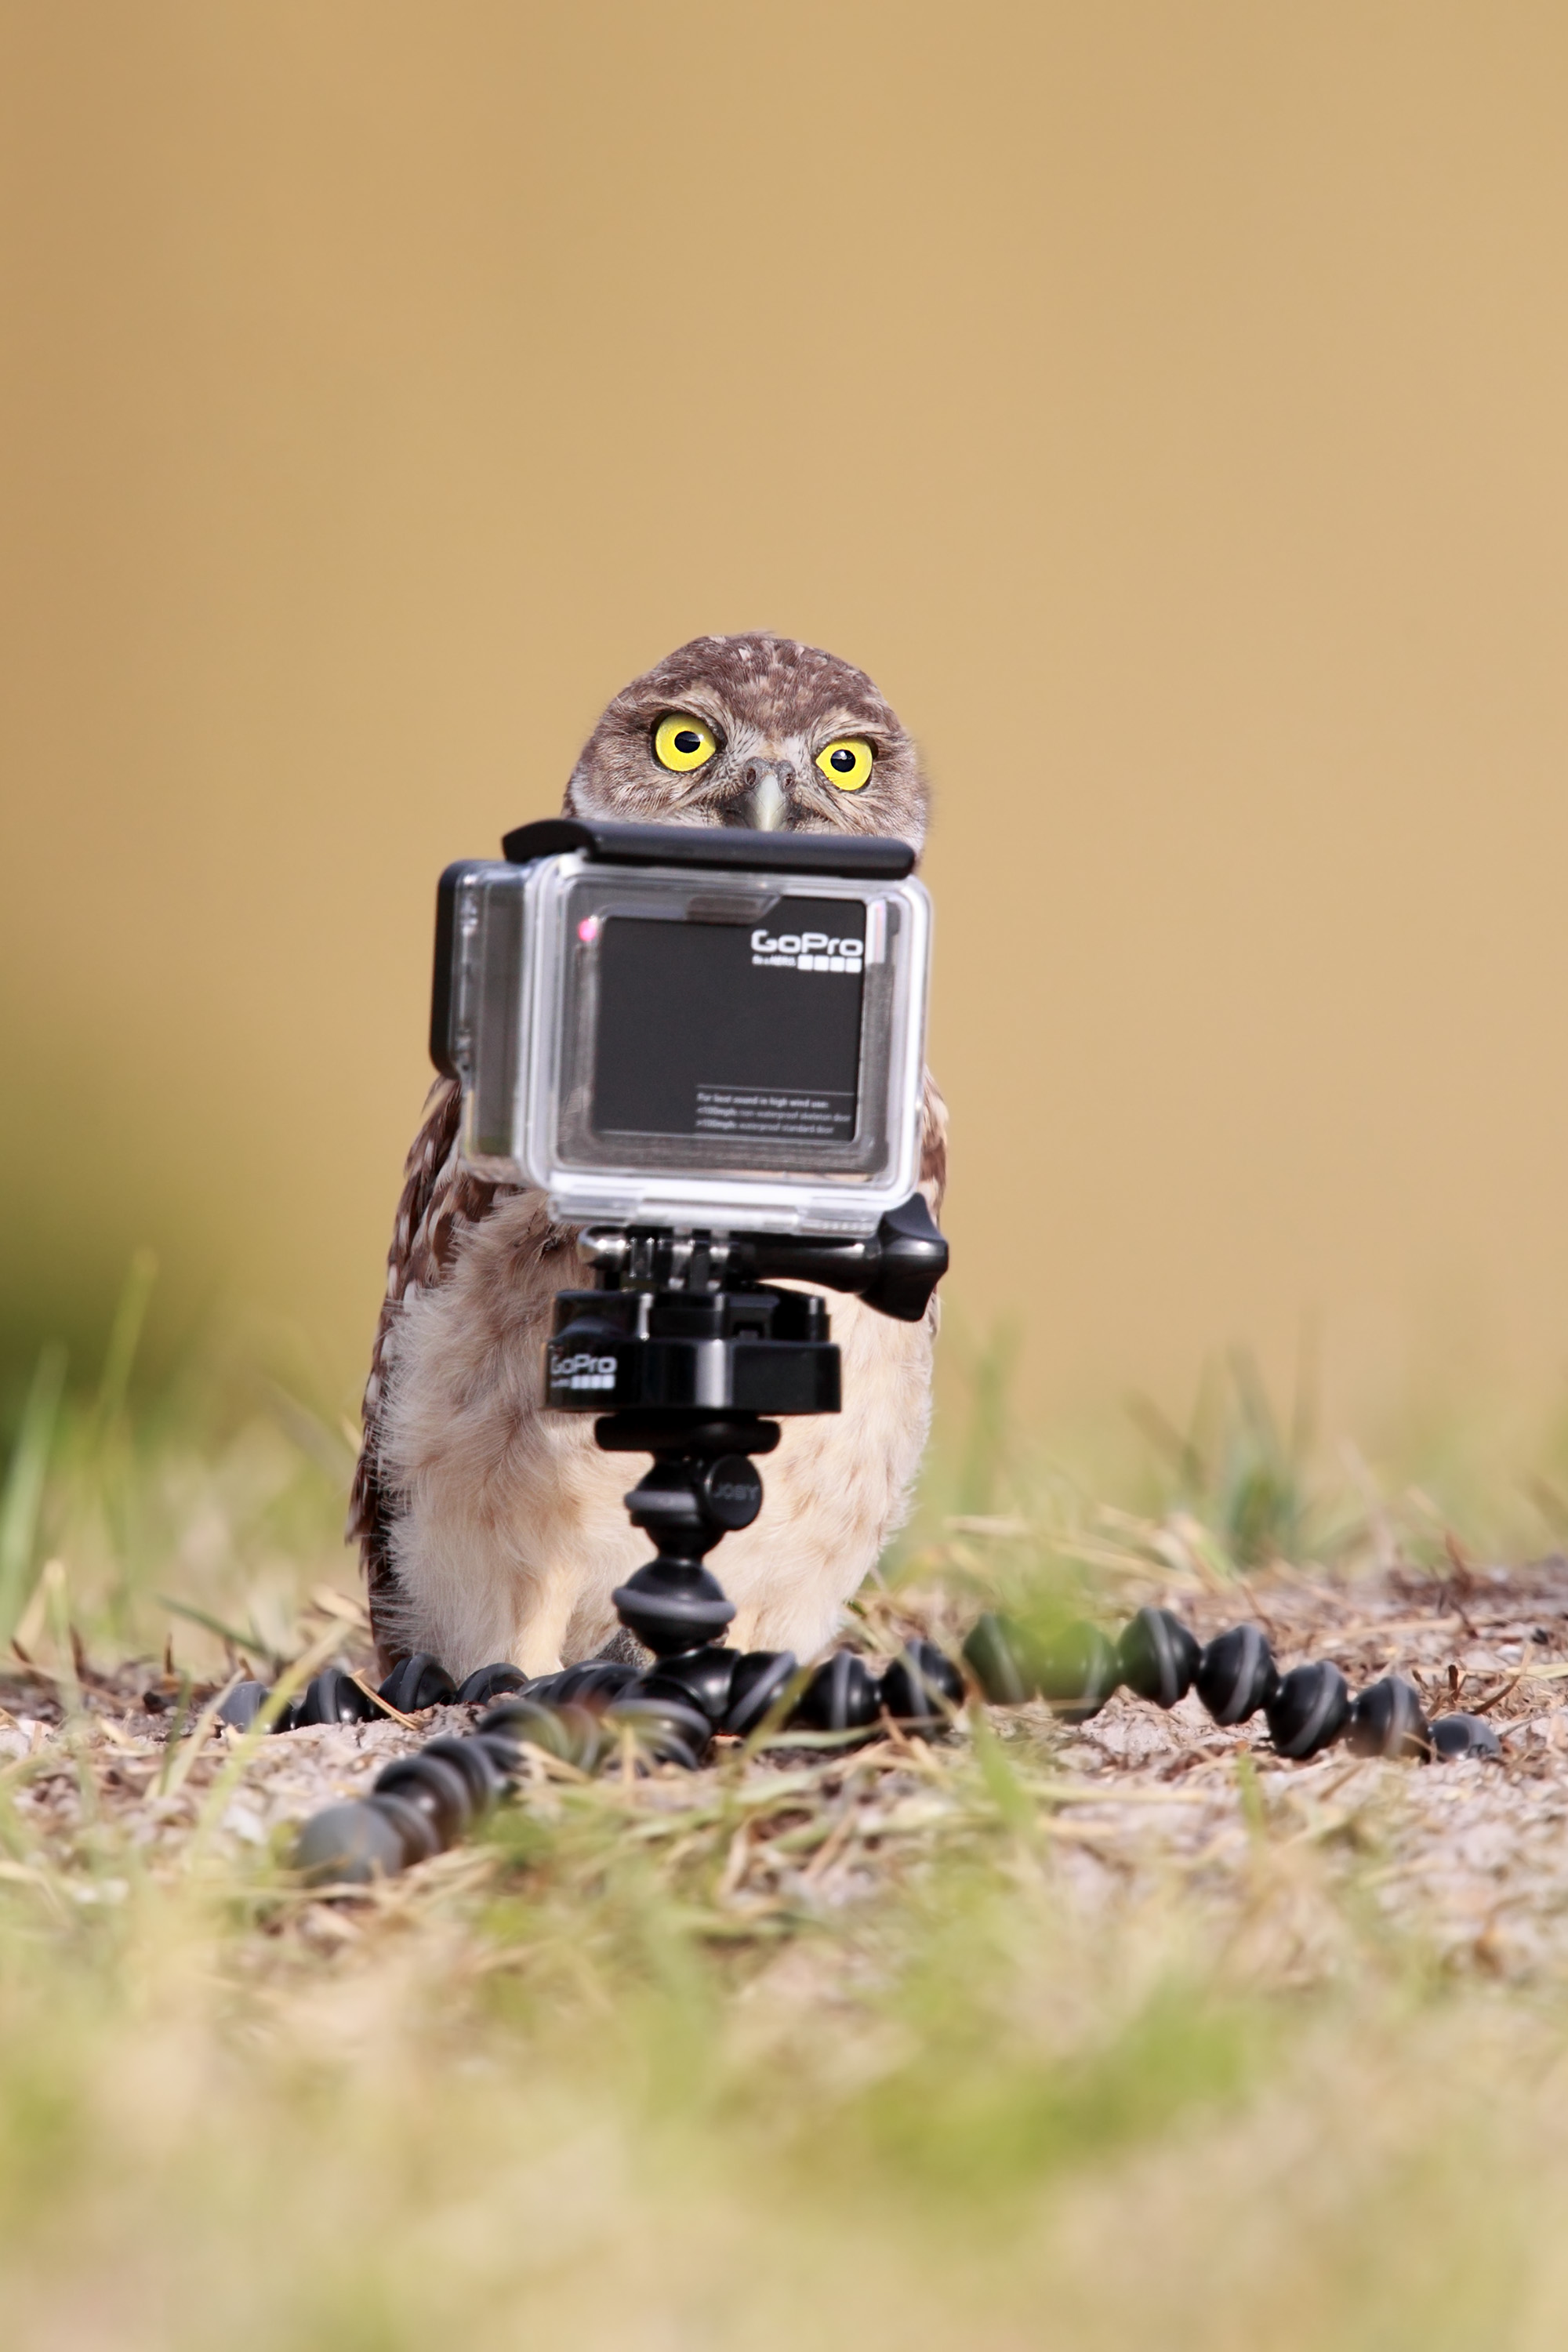 A burrowing owlet readies for a selfie in Cape Coral, Florida. Photo by Megan Lorenz/The Comedy Wildlife Photography Awards.